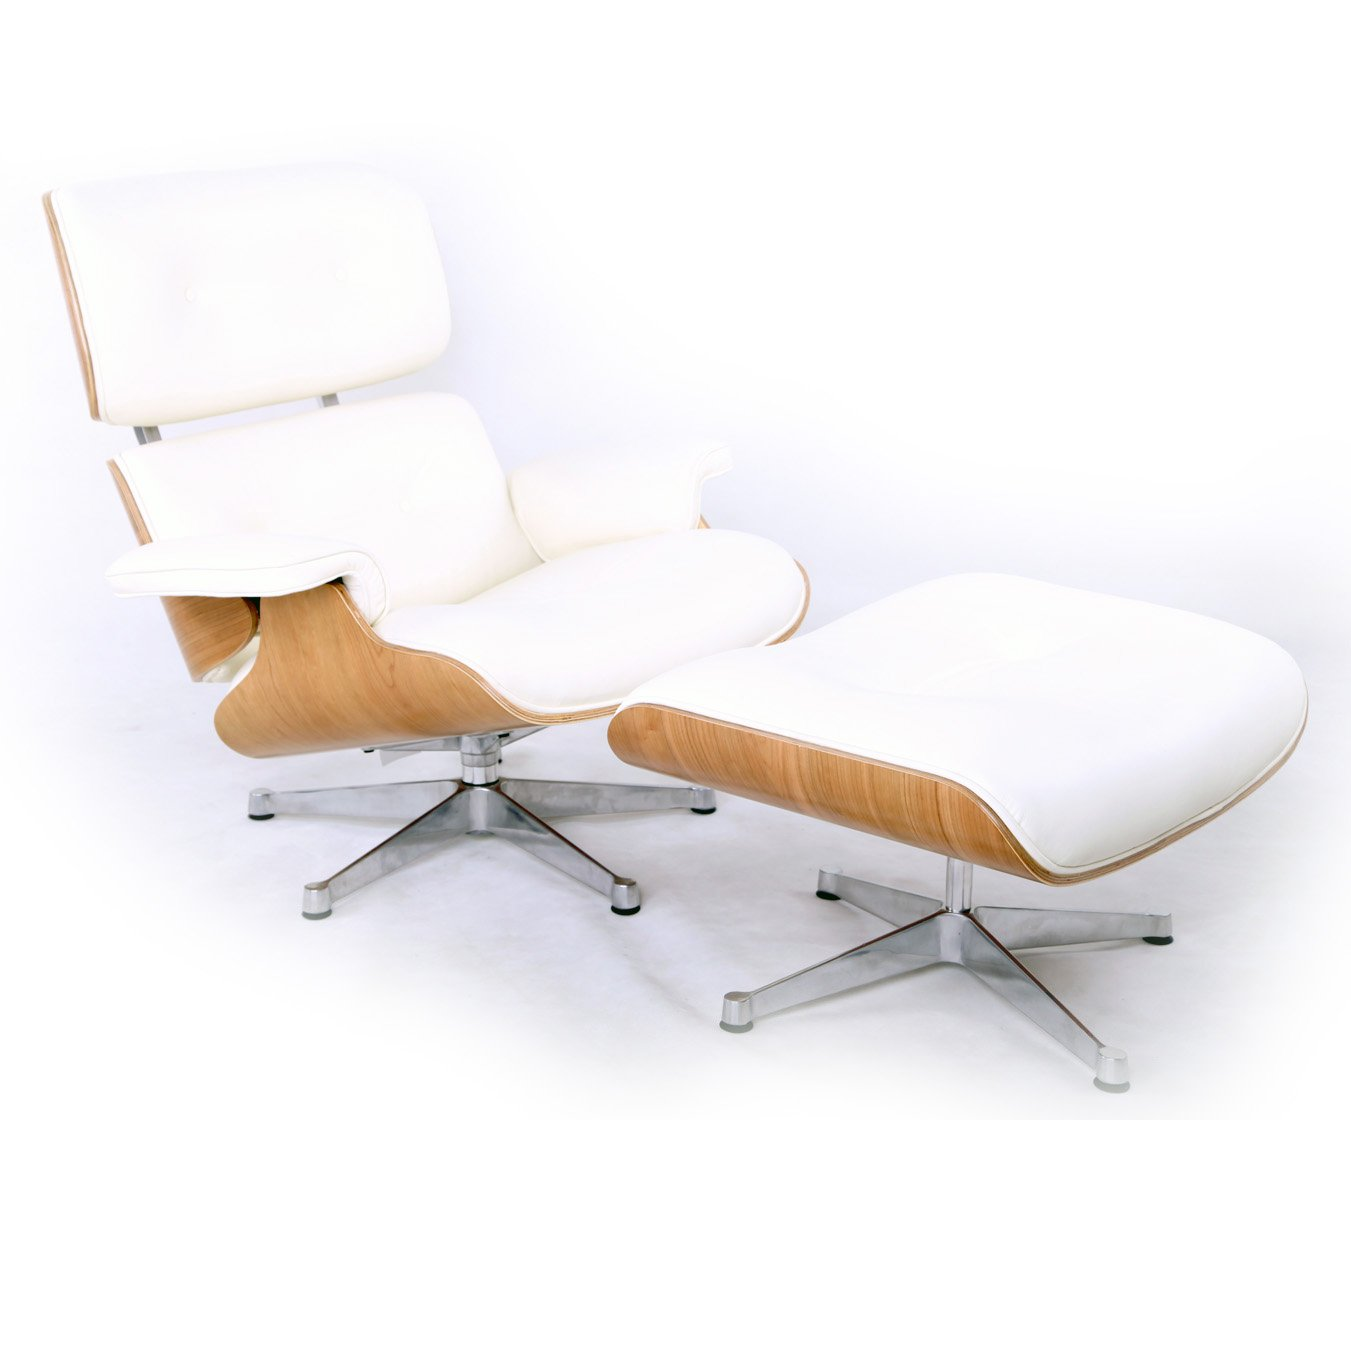 Kardiel Eames Style Plywood Lounge Chair U0026 Ottoman, White  Aniline/Ash/Silver Base